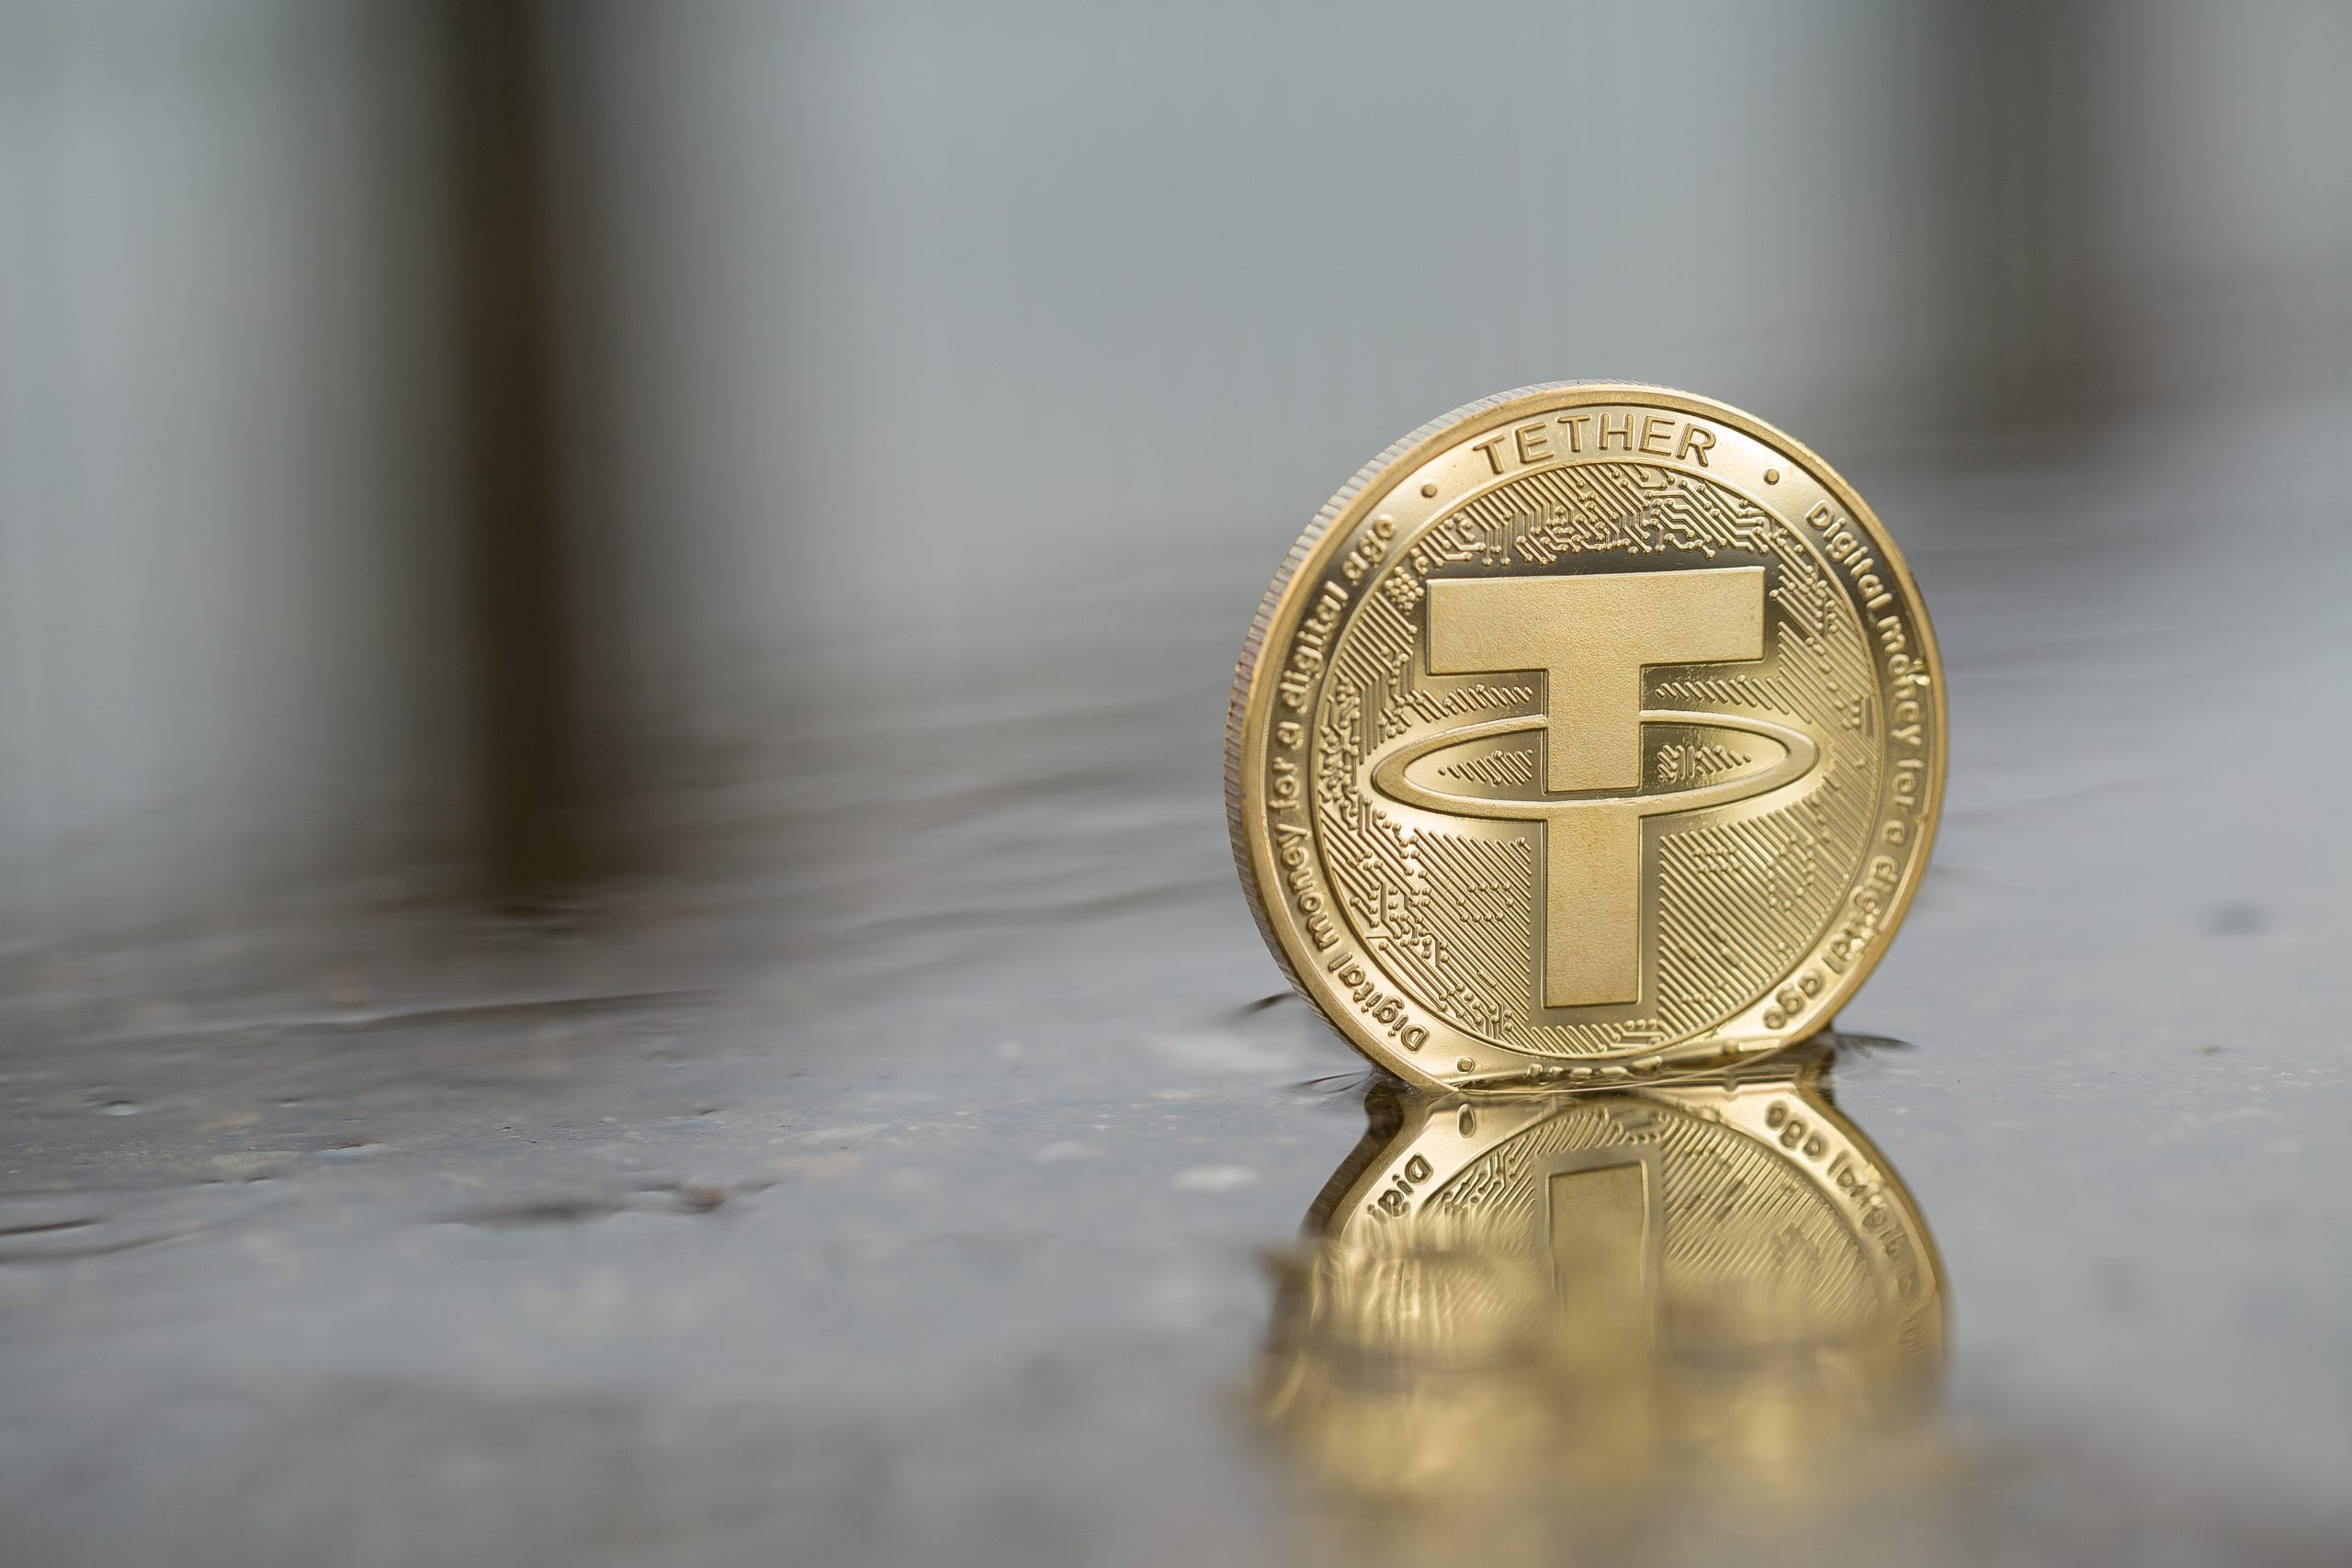 Is Tether Factual a Rip-off to Enrich Bitcoin Merchants?